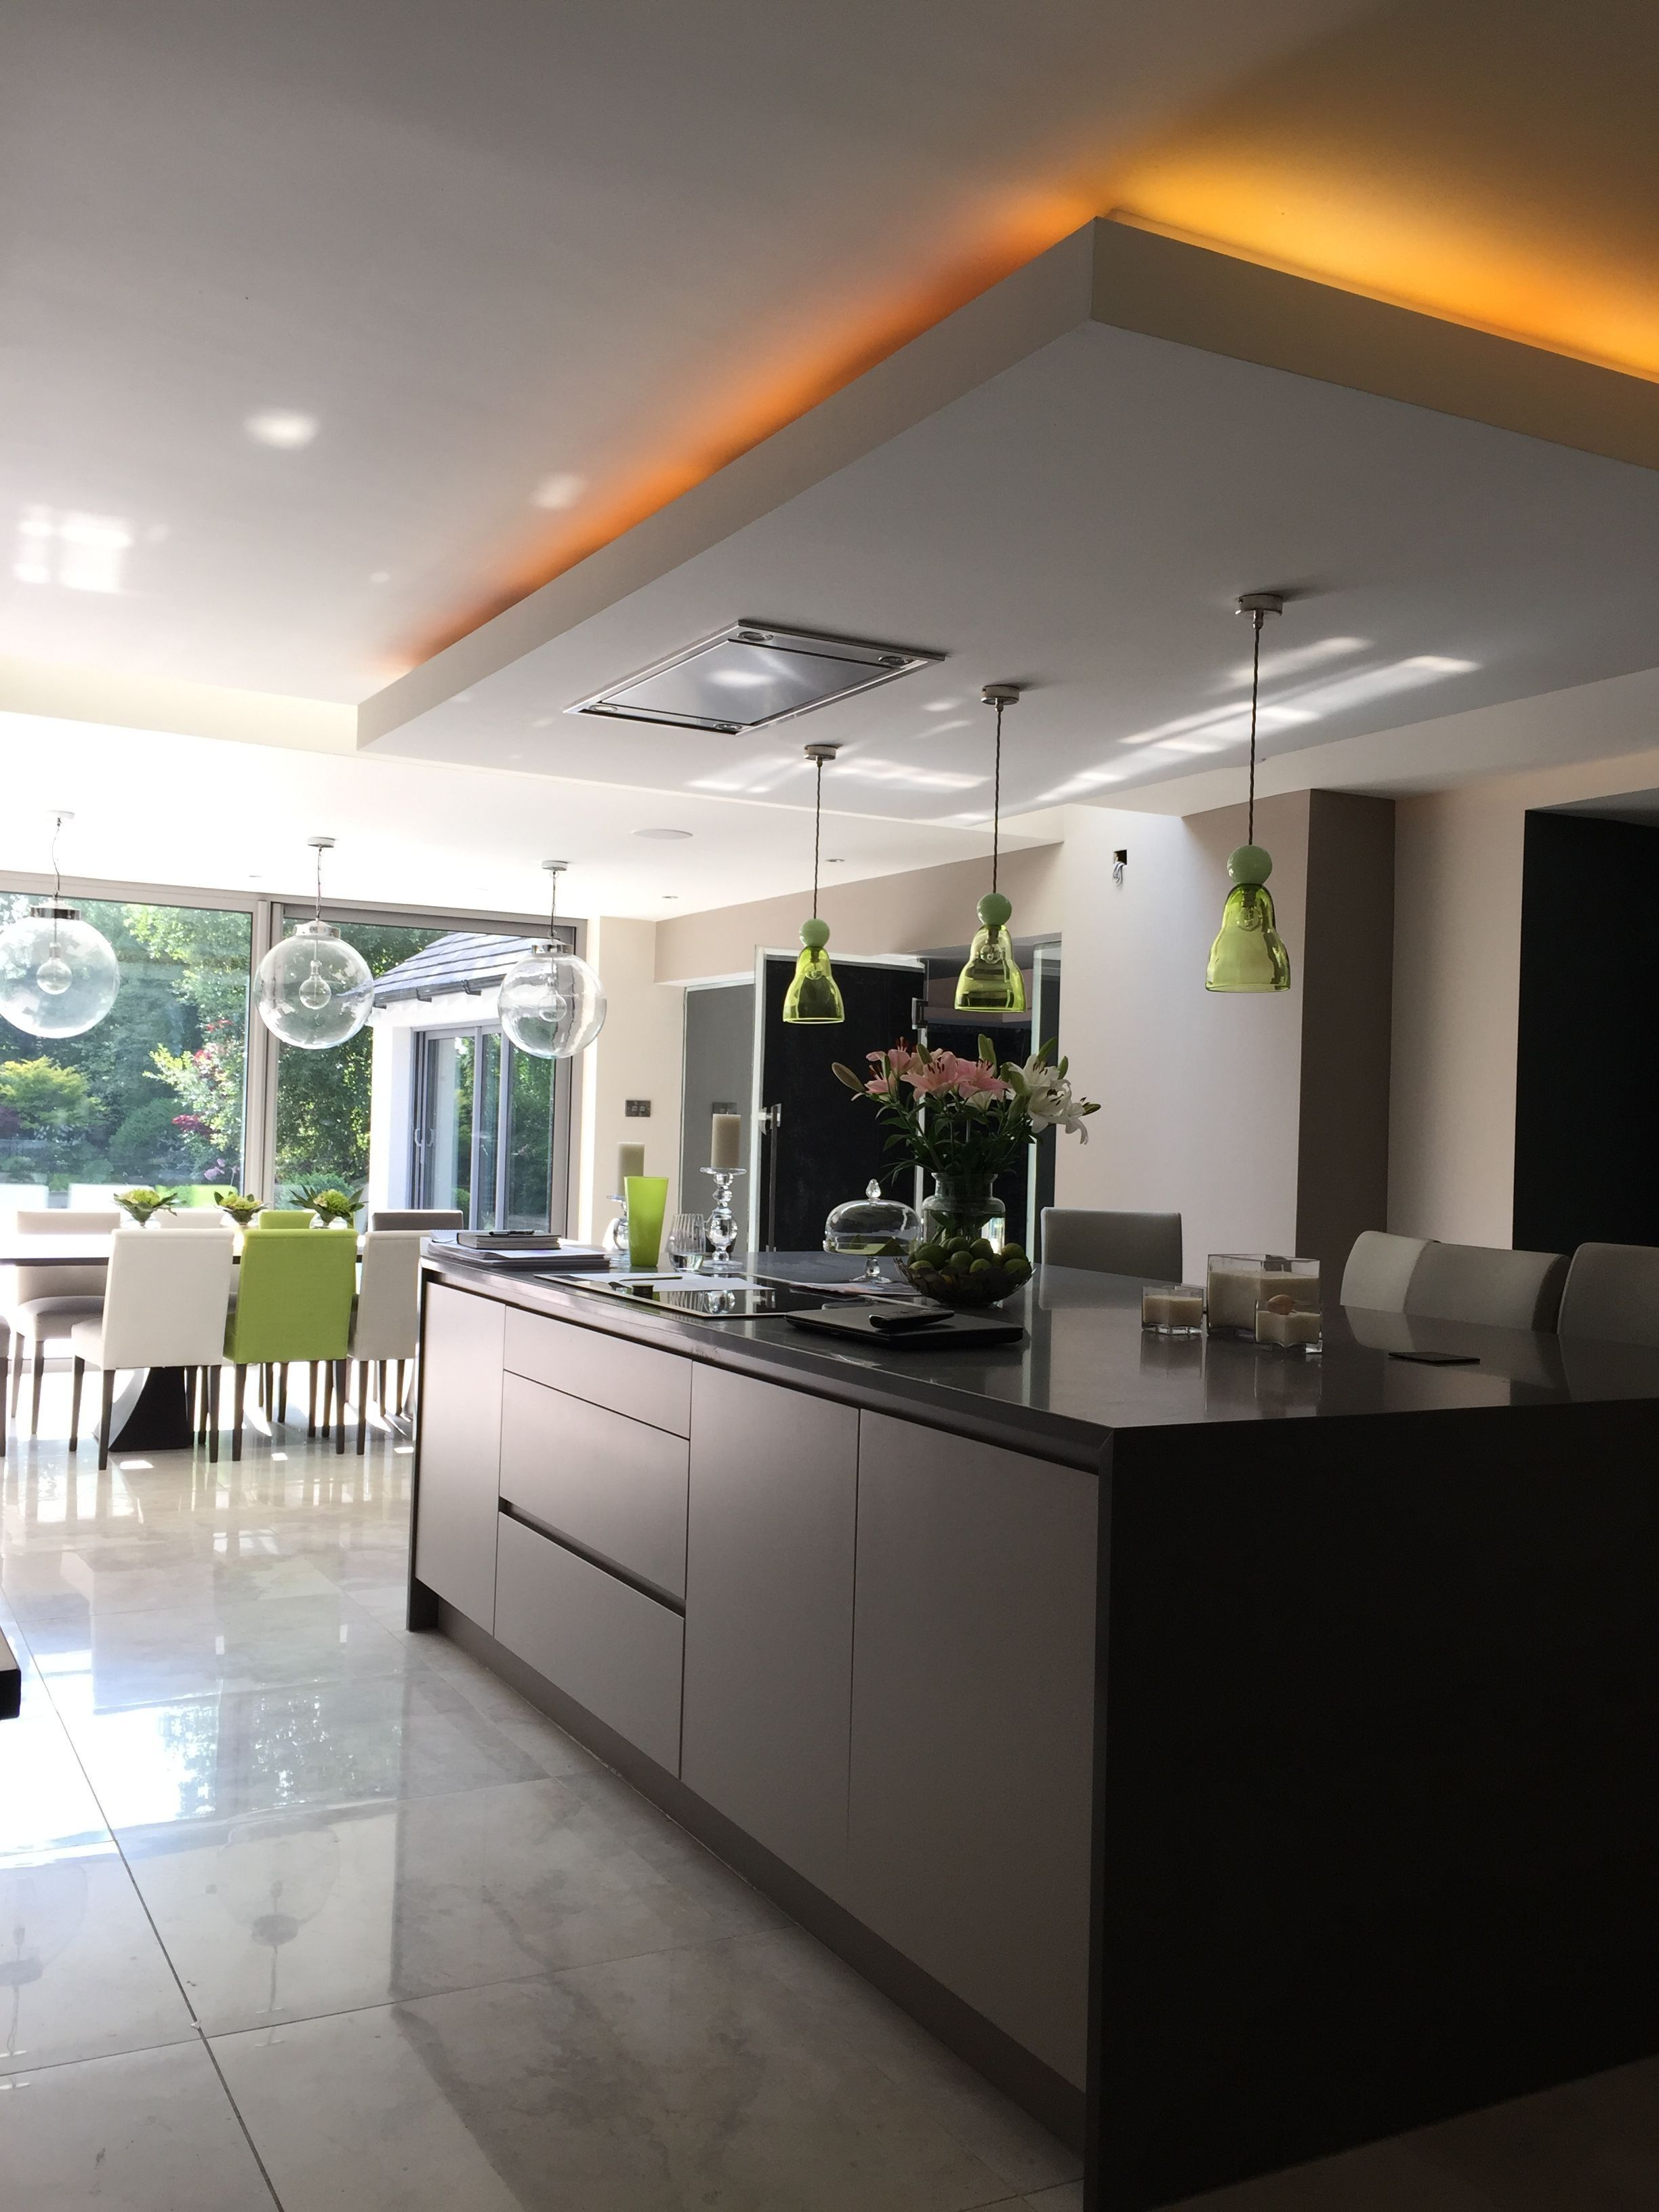 62 Awesome Kitchen Lighting Ideas Kitchen Ceiling Design Modern Kitchen Lighting Modern Kitchen Design